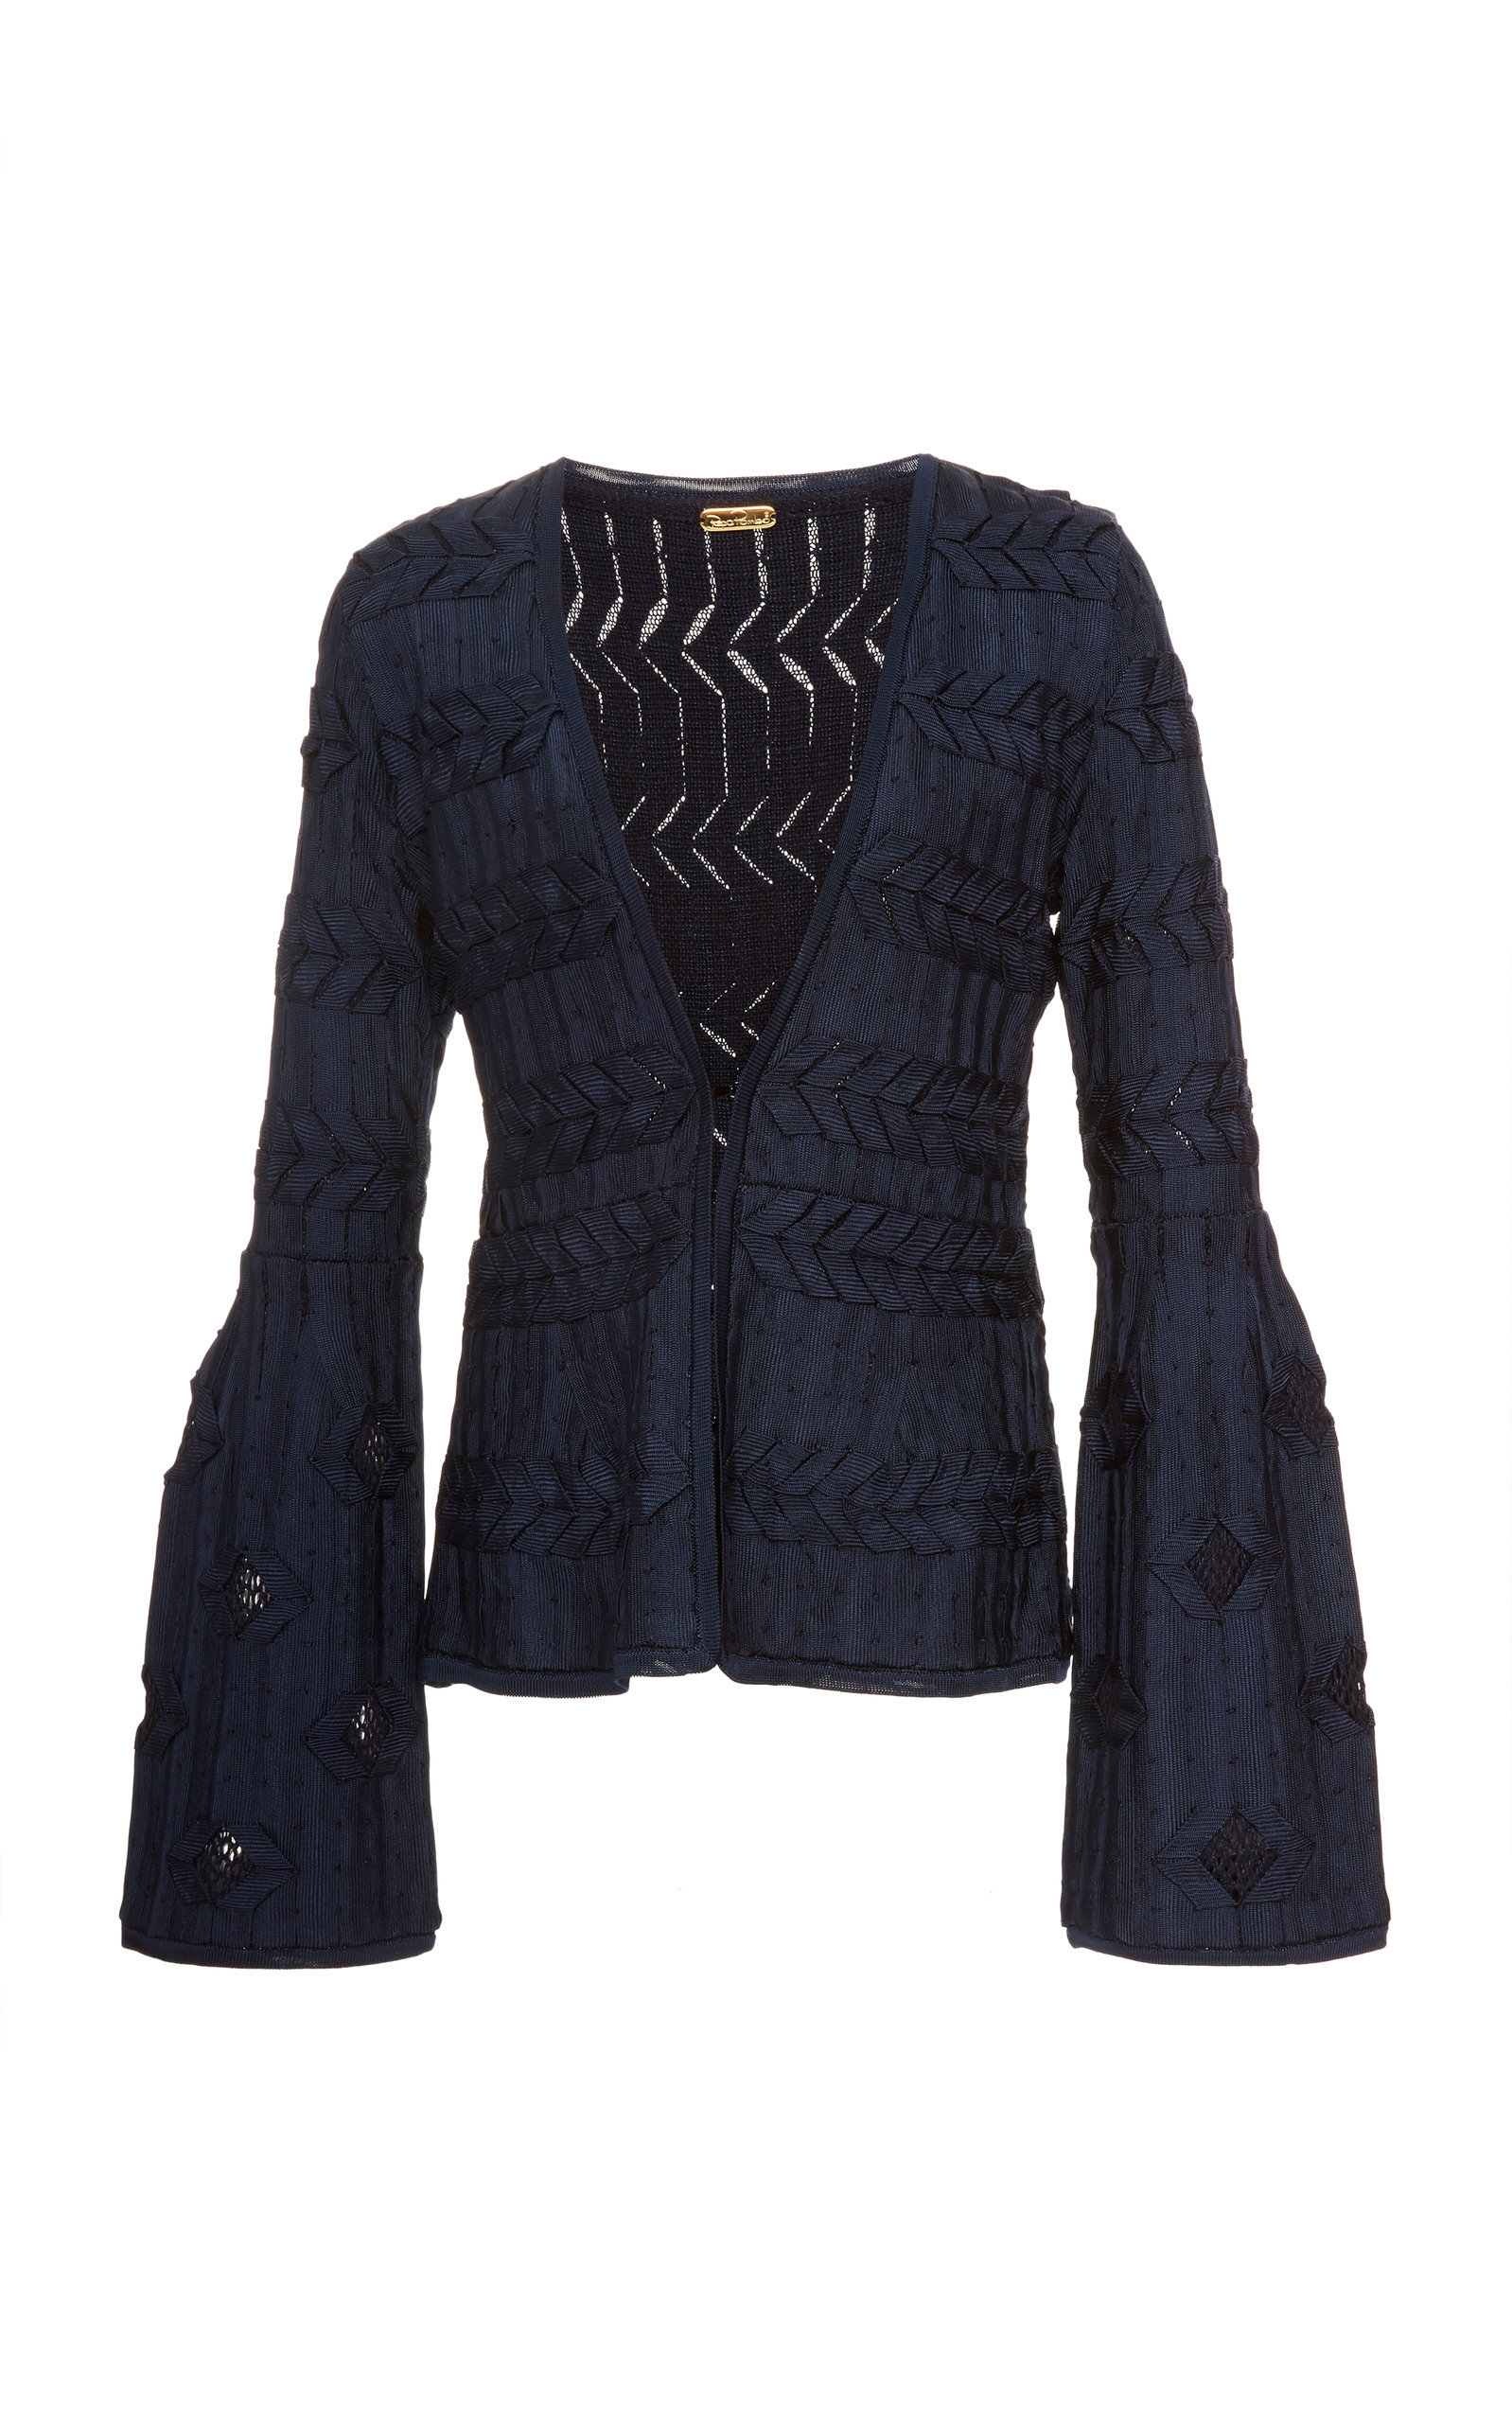 PEPA POMBO Cambridge Fitted Jacket in Navy